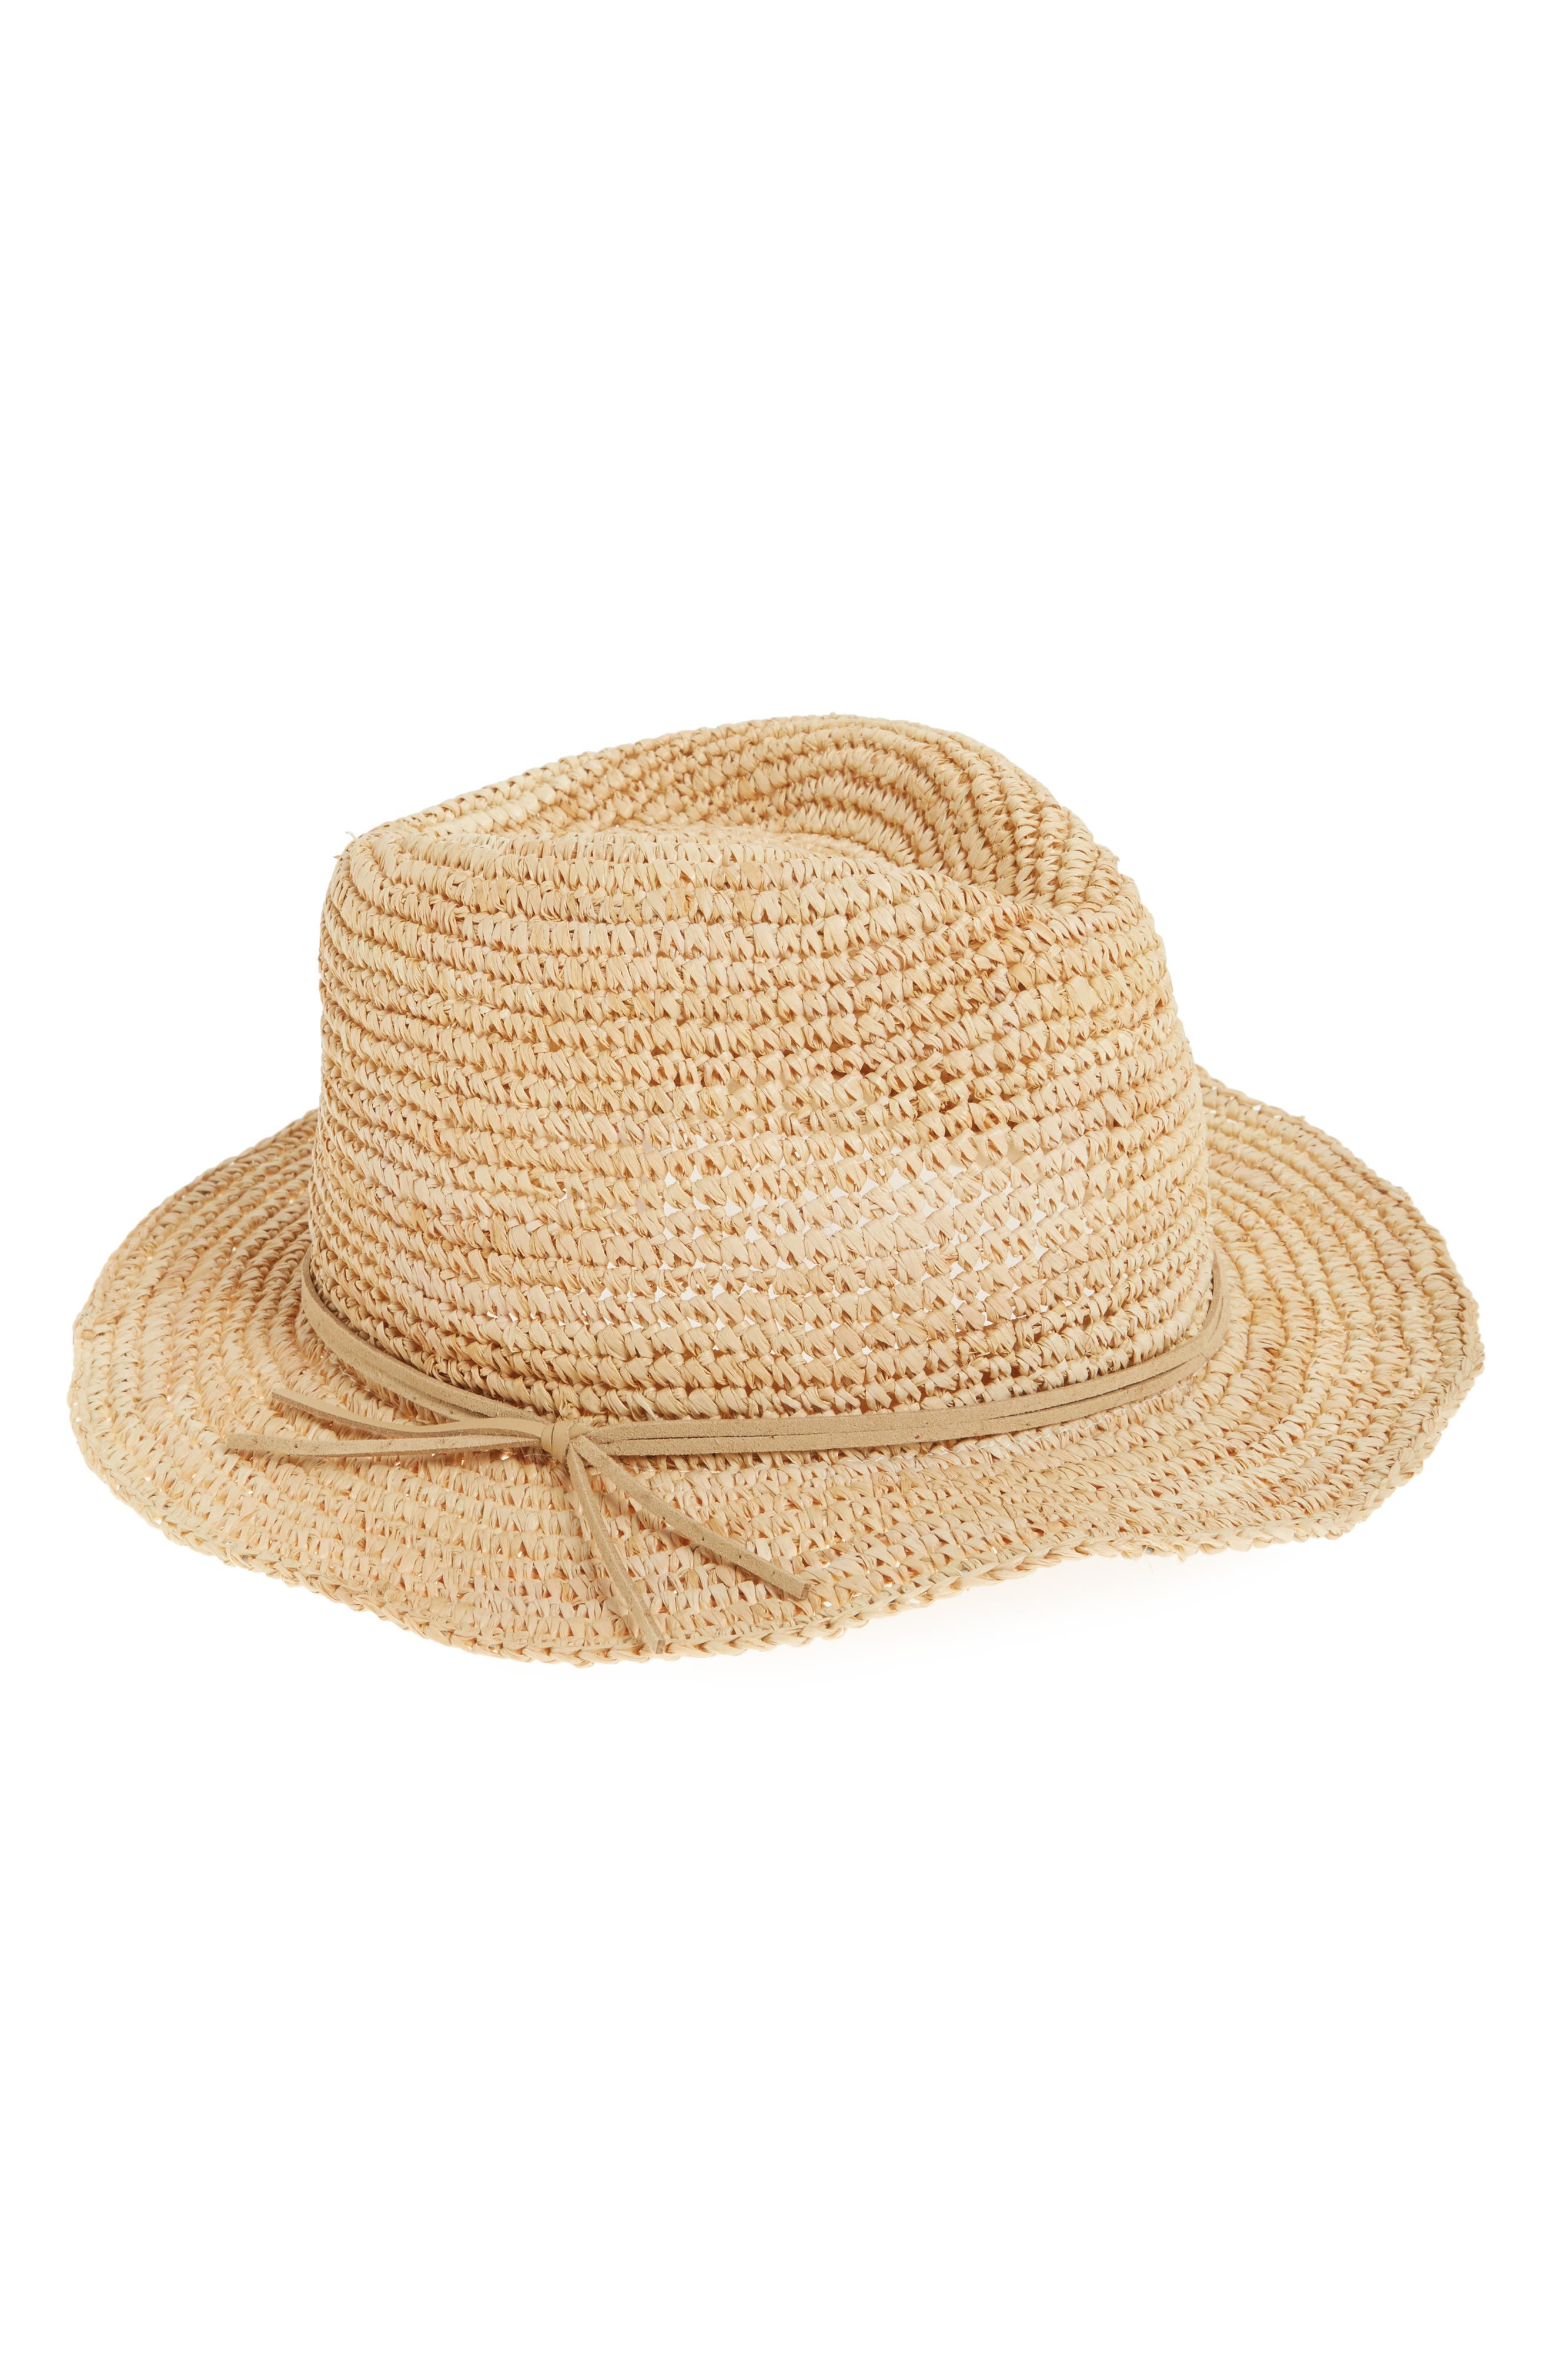 Caslon Raffia Panama Hat,                         Main,                         color, Natural Combo